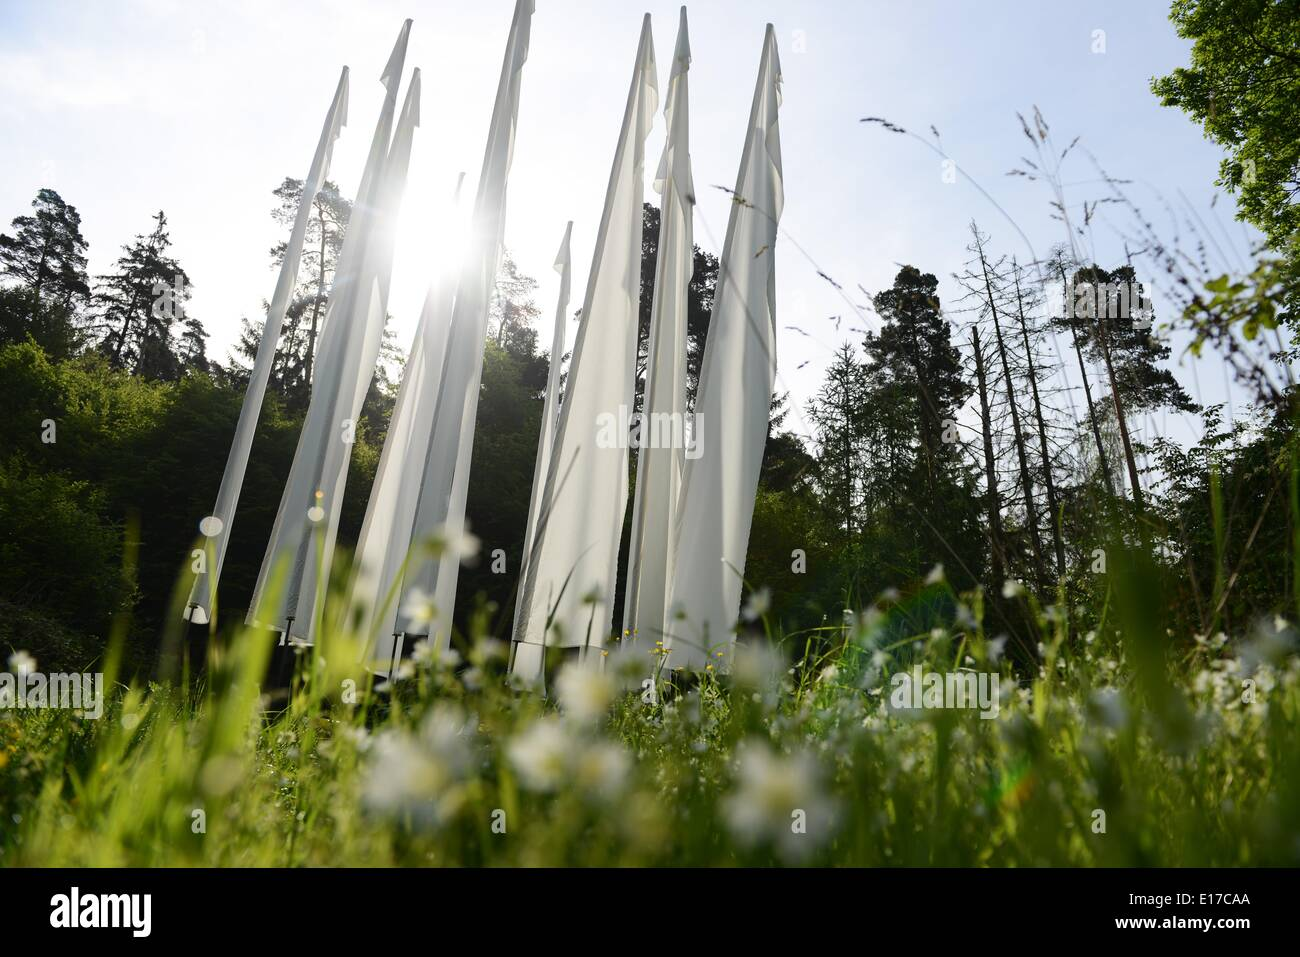 Bringhausen, Germany. 21st May, 2014. The sun shines through the land art object Windturm (wind tower) by artist Reta Reinl in Kellerwald-Edersee National Park near Bringhausen, Germany, 21 May 2014. The national park is celebrating its tenth birthday this year. Photo: Uwe Zucchi/dpa/Alamy Live News - Stock Image